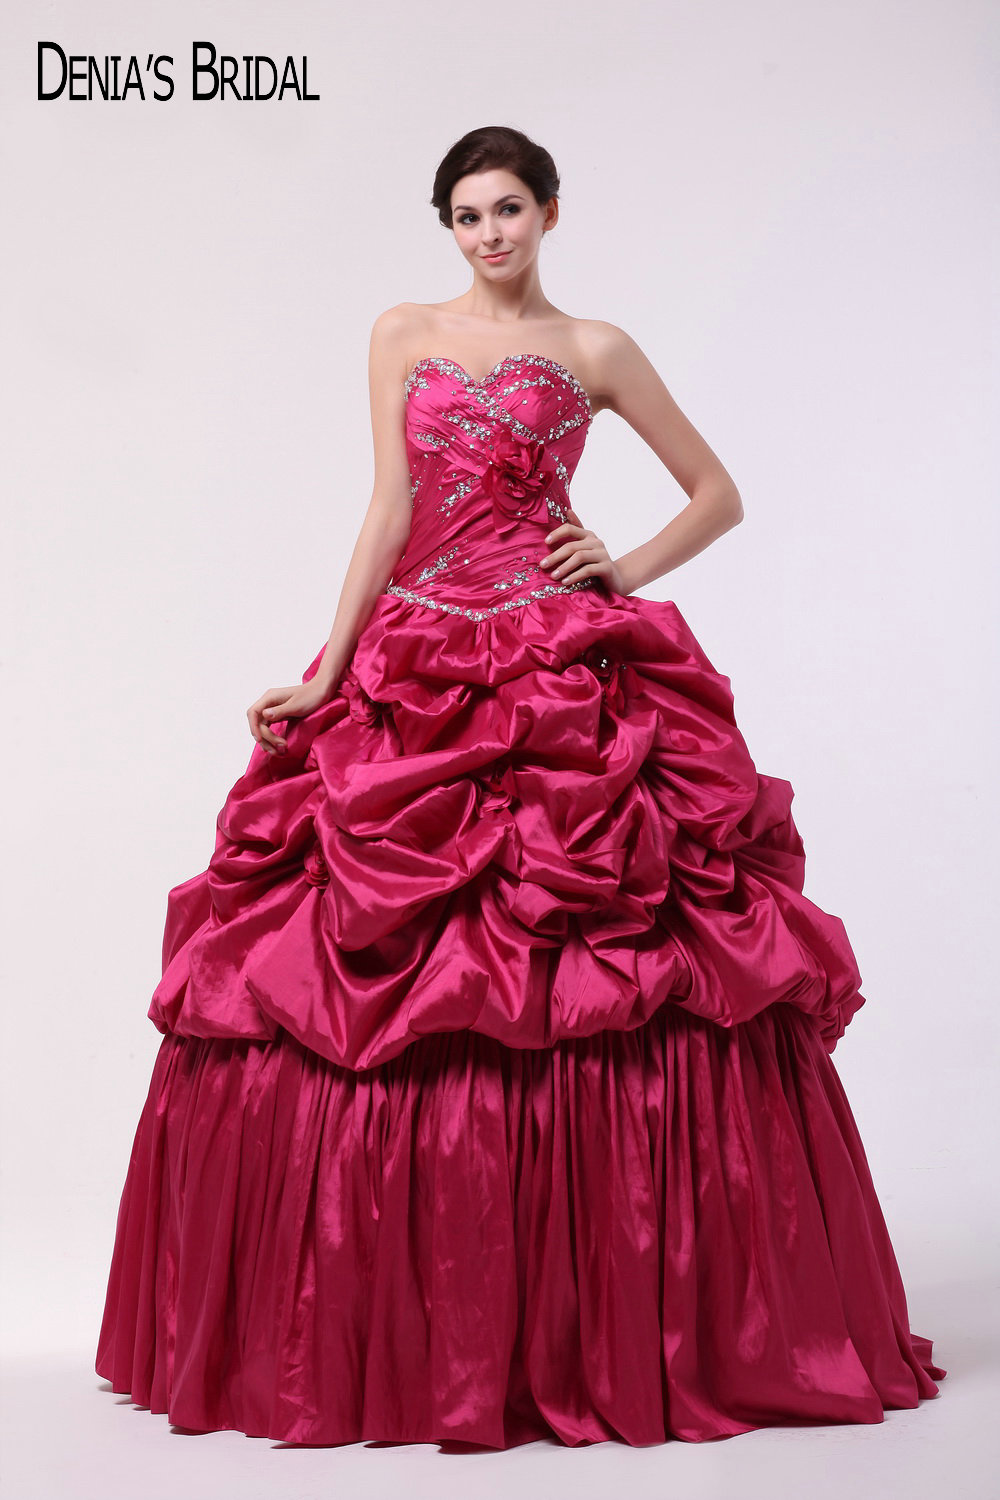 2017 Dark Pink Ball Gown Evening Dresses with Strapless Neckline Ruffles Beaded Floor Length Party Prom Gowns